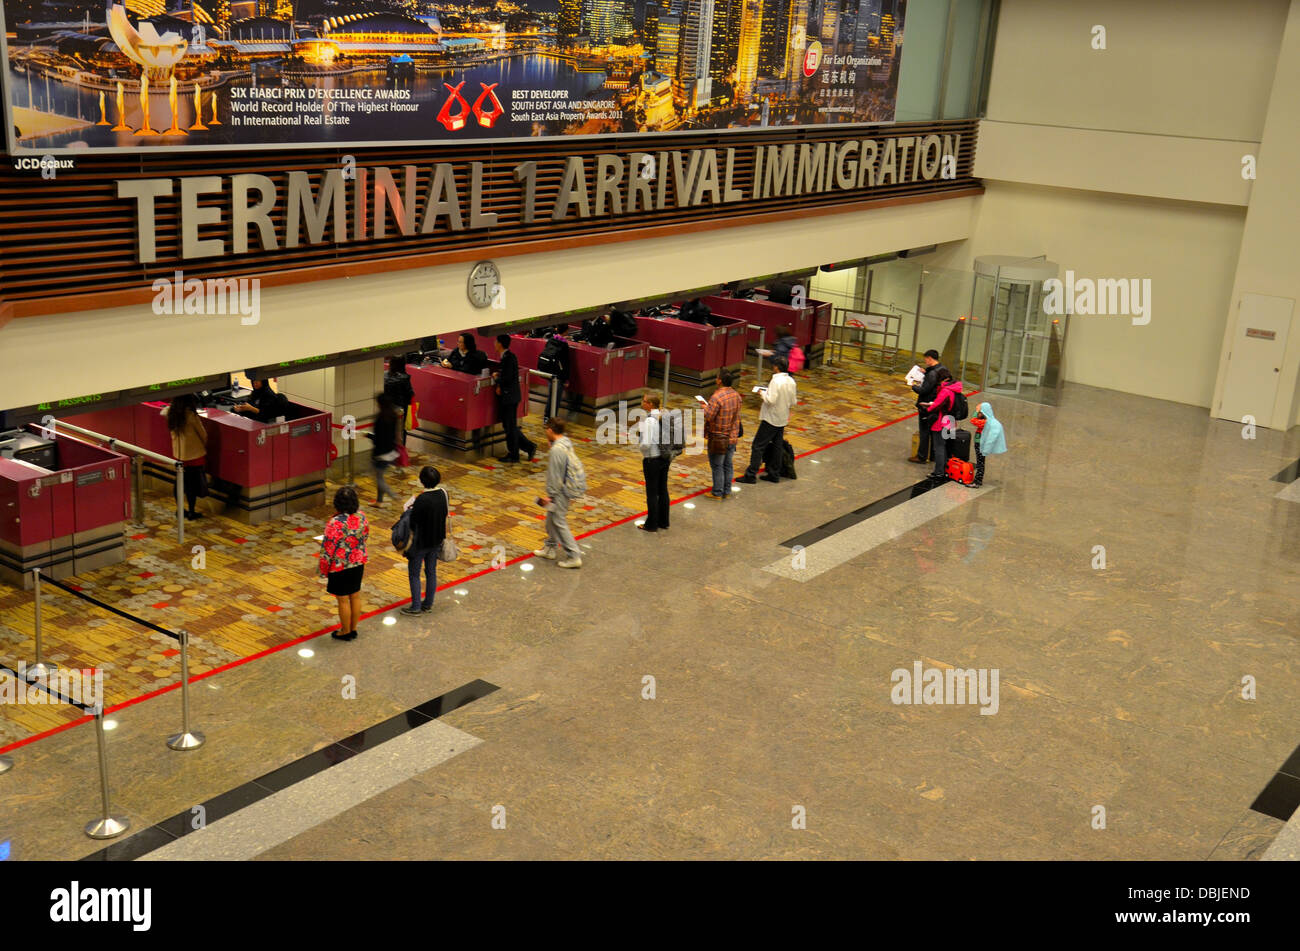 singapore changi airport arrival immigration counters. Black Bedroom Furniture Sets. Home Design Ideas